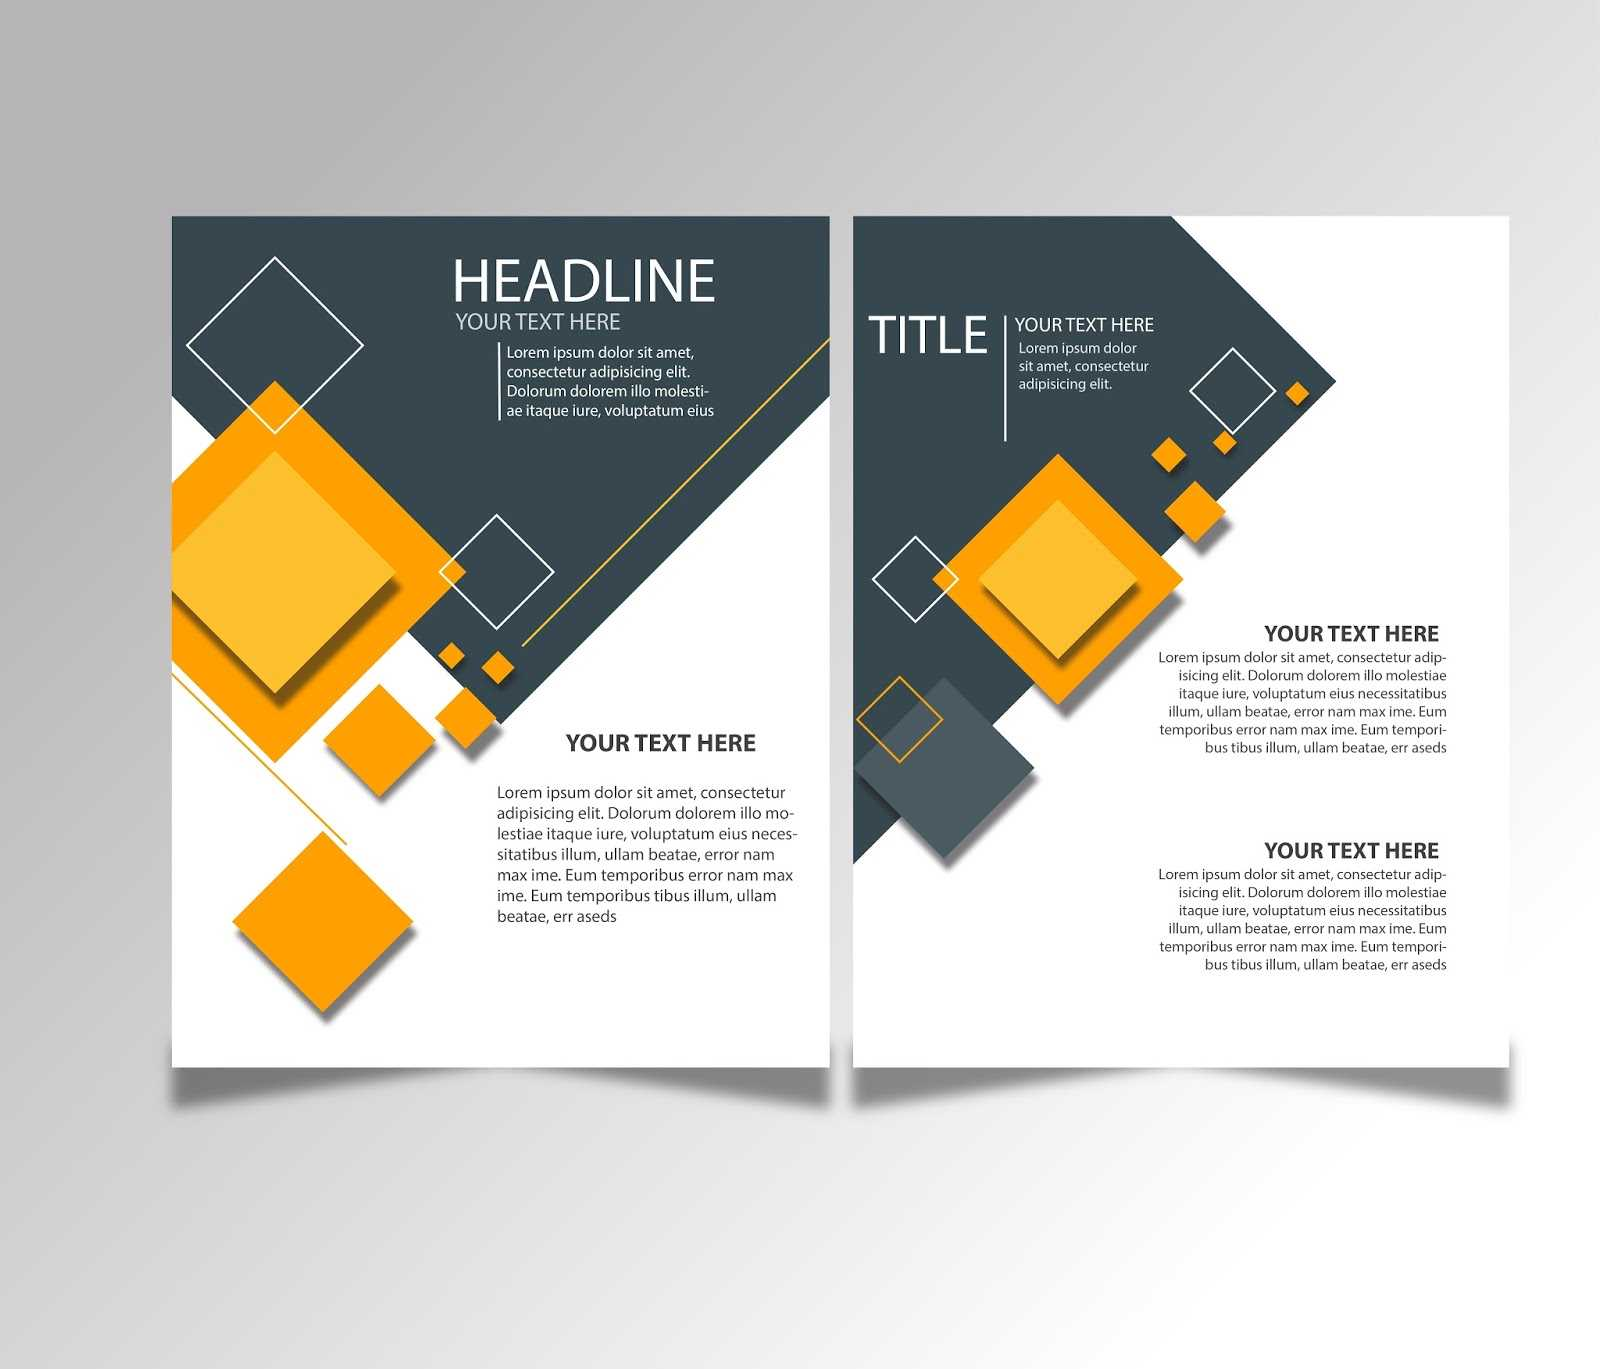 Free Download Brochure Design Templates Ai Files - Ideosprocess Pertaining To Ai Brochure Templates Free Download